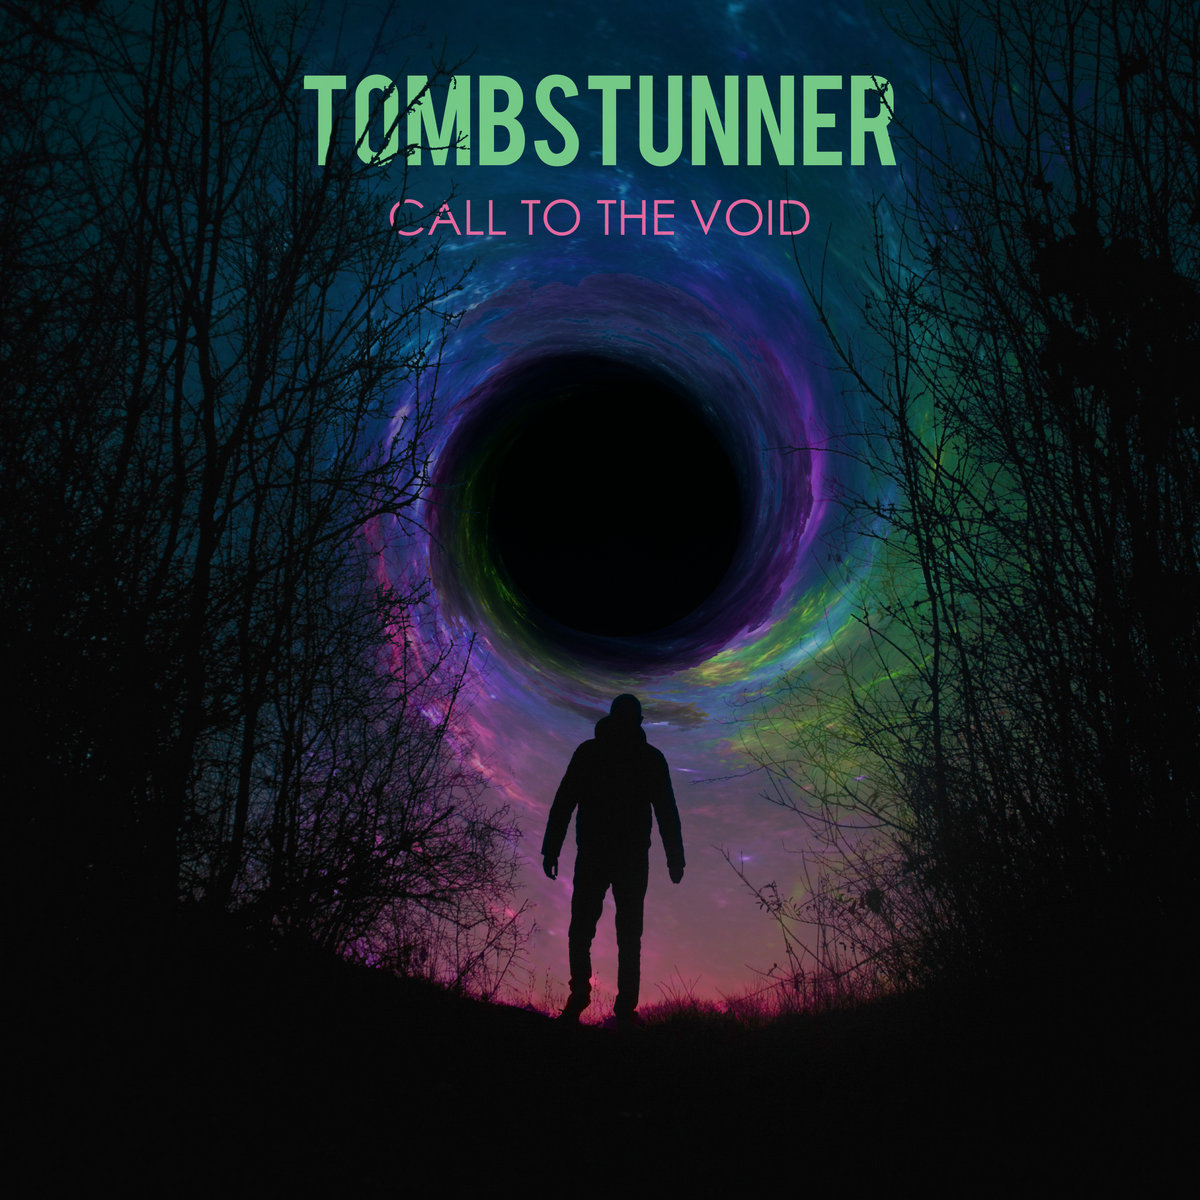 Tombstunner Call to the Void